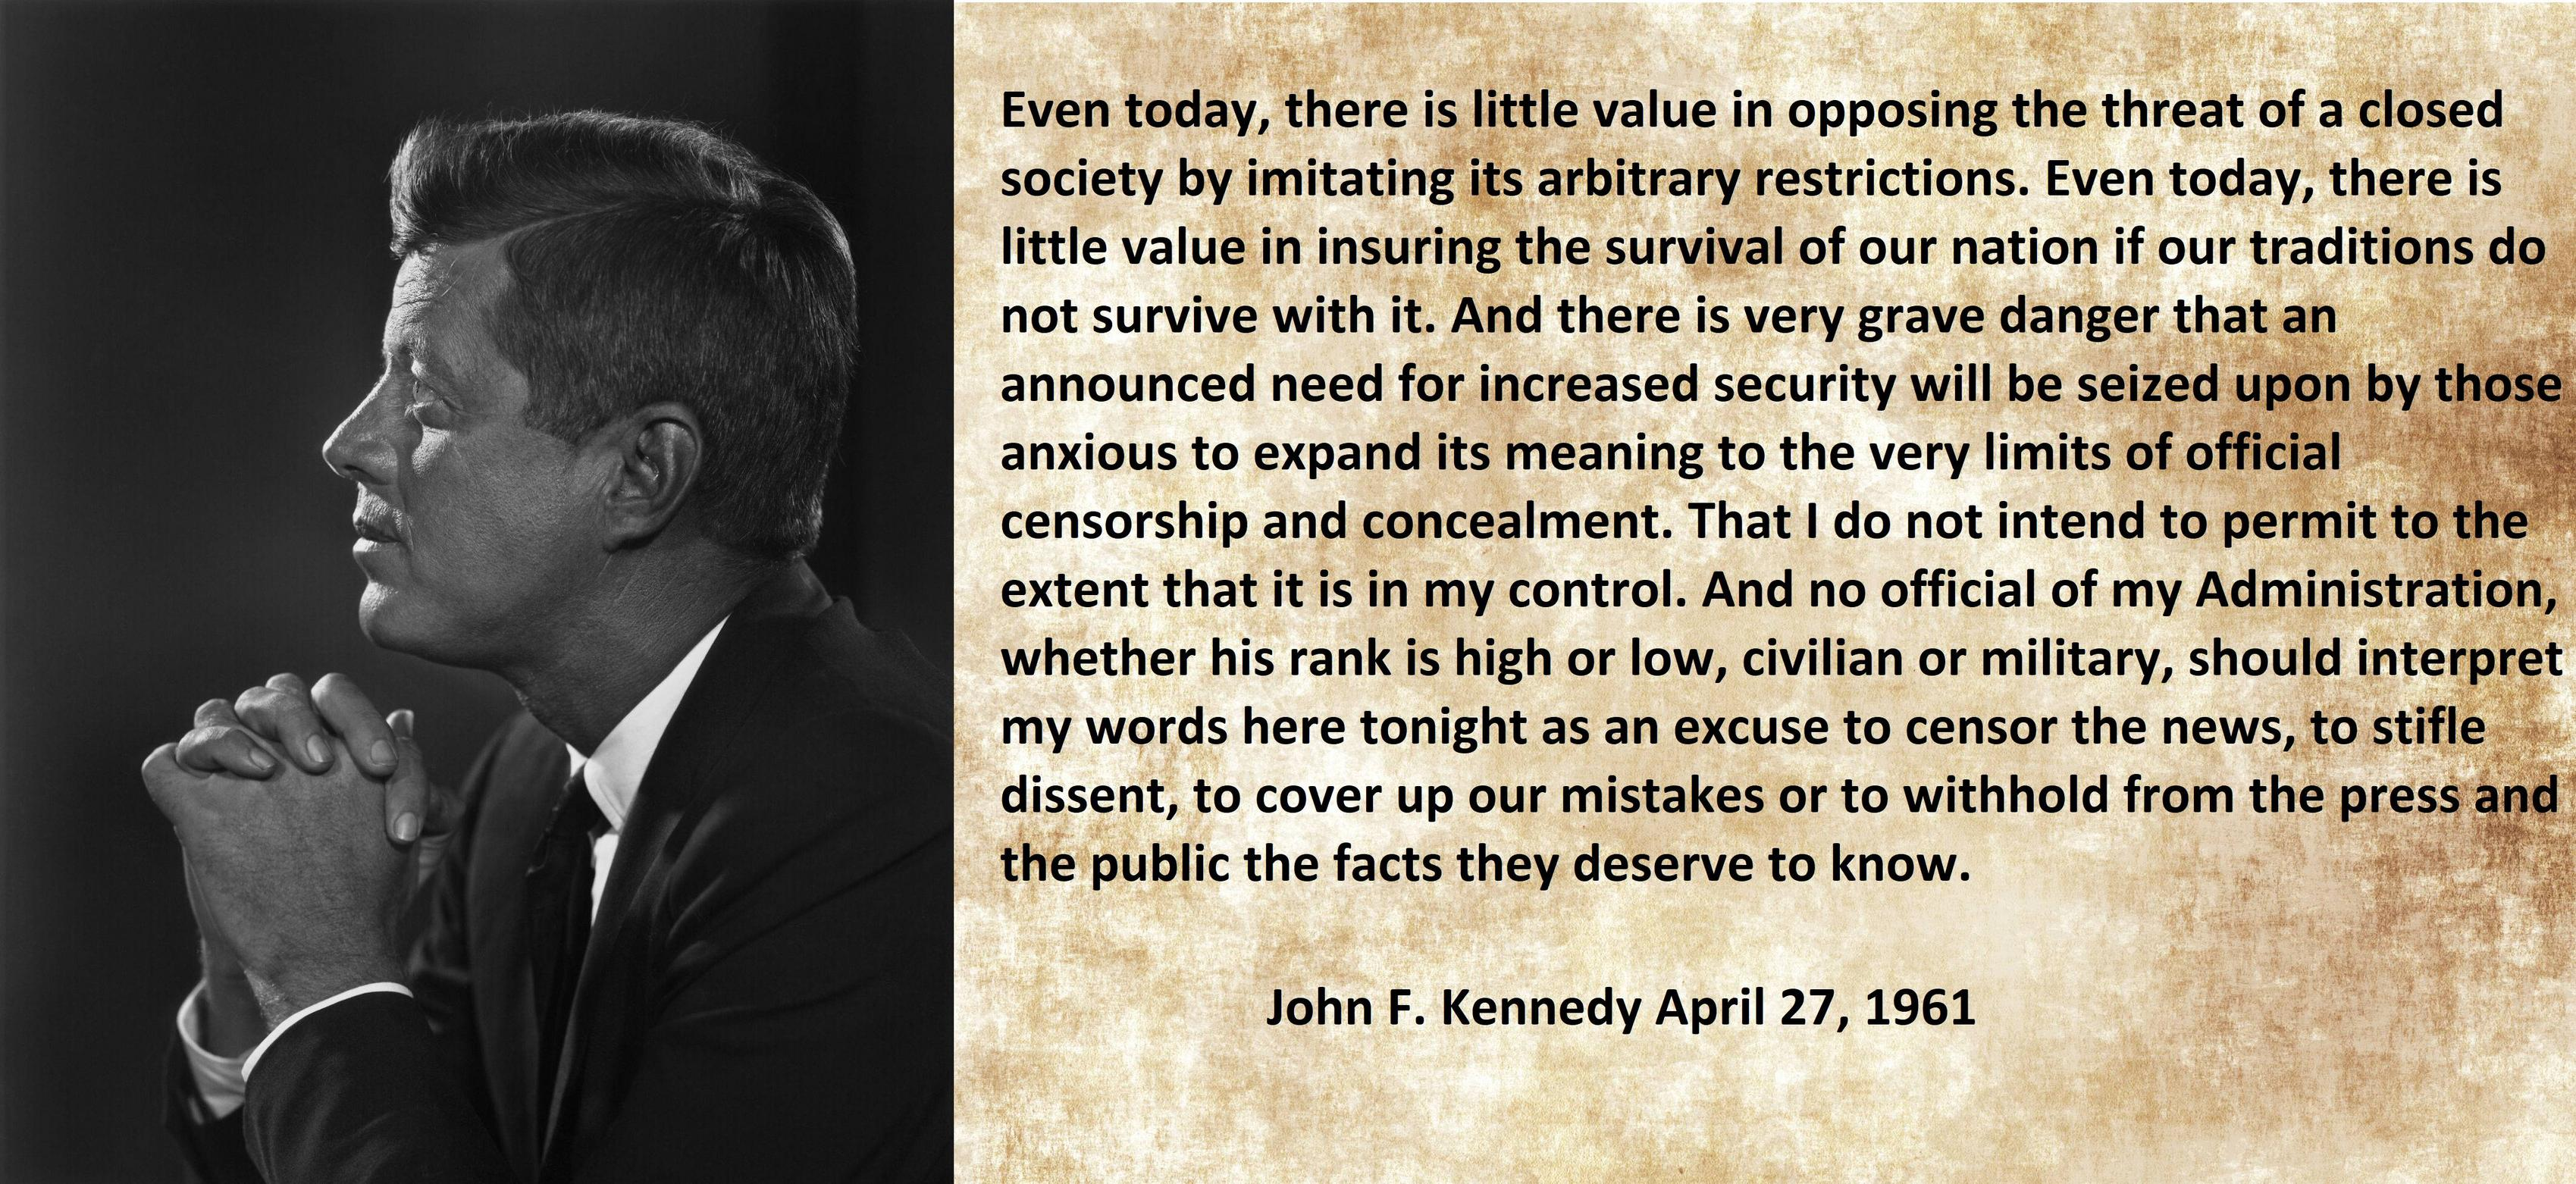 """And there is a very grave danger that an announced need for increased security will be seized upon by those anxious to expand its meaning to the very limits of official censorship and concealment. That I do not intend to permit to the extent that is in my control."" – J.F.K. [4248×1952]"